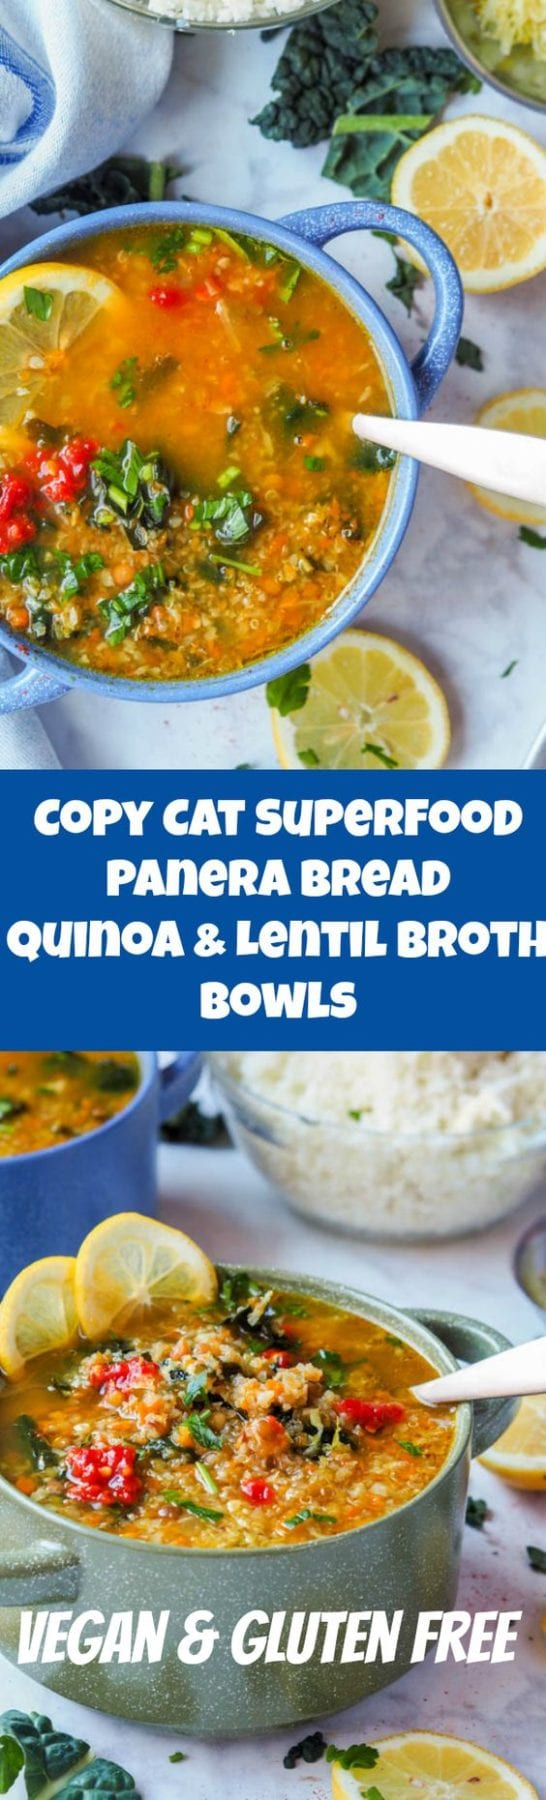 Healthy superfood copycat Panera broth bowls with lentils, quinoa, kale and cauliflower makes for the most comforting and nutritious one pot meal. Gluten Free and can be made Vegan #healthy #soup #dinner #vegan #glutenfree